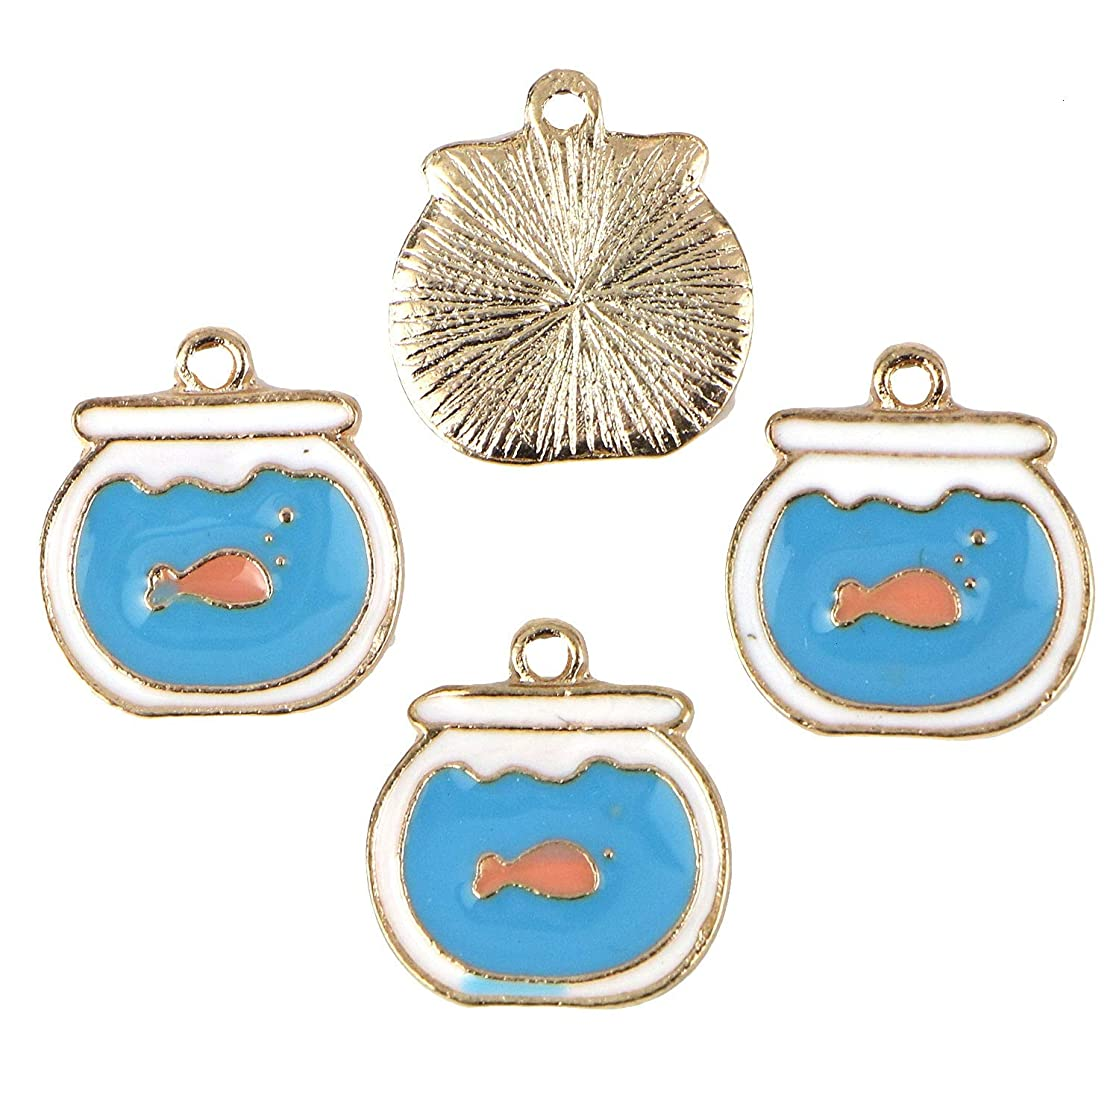 Monrocco 20Pcs Enamel Fish Tank Charm Pendant for Jewelry Making and Crafting